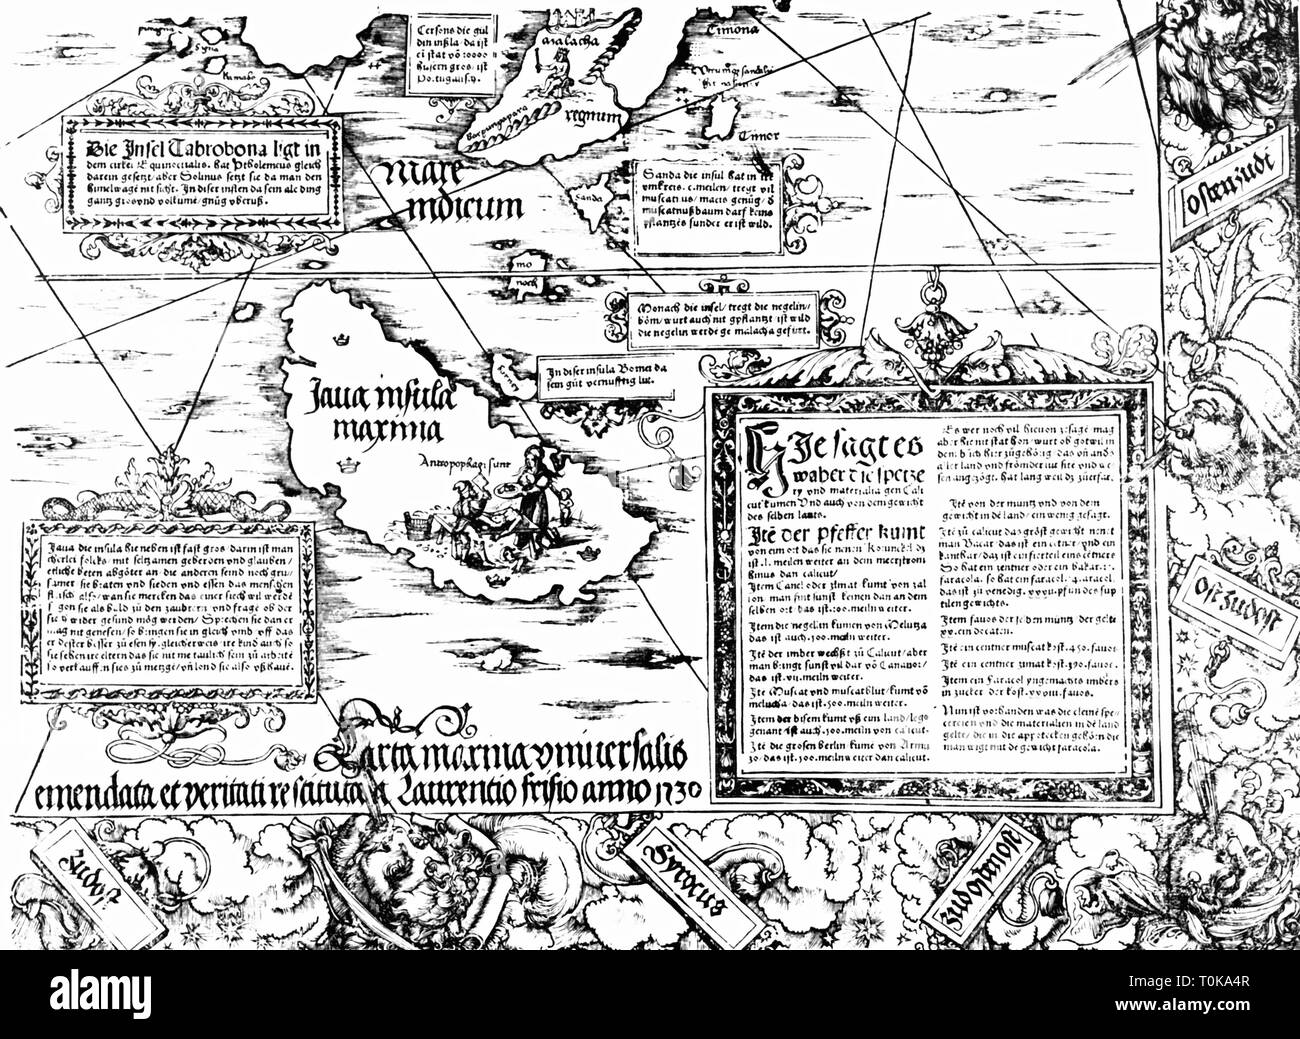 cartography, maps, Island Java, 'Carta Marina Navigatoria Portugallensis', detail, woodcut, Germany, 1525, Additional-Rights-Clearance-Info-Not-Available - Stock Image